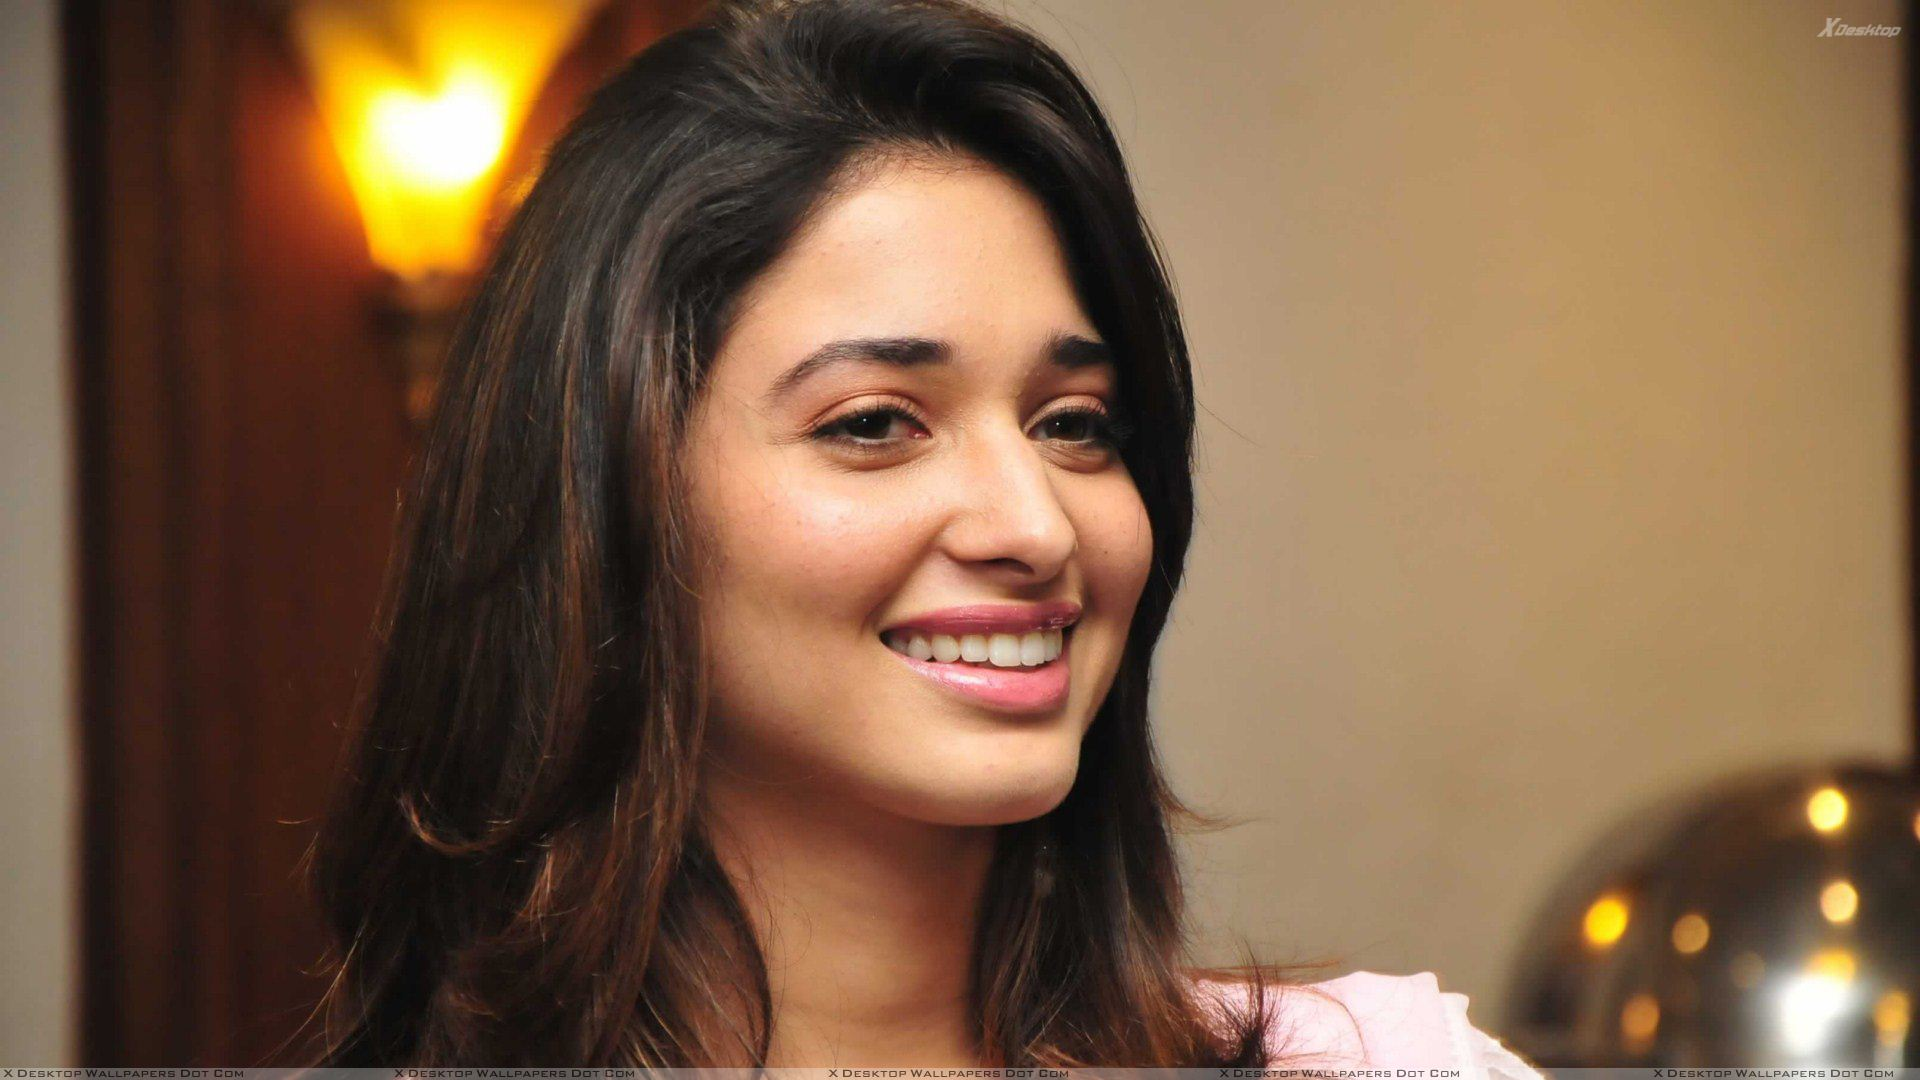 You Are Viewing Wallpaper Titled Tamanna Bhatia